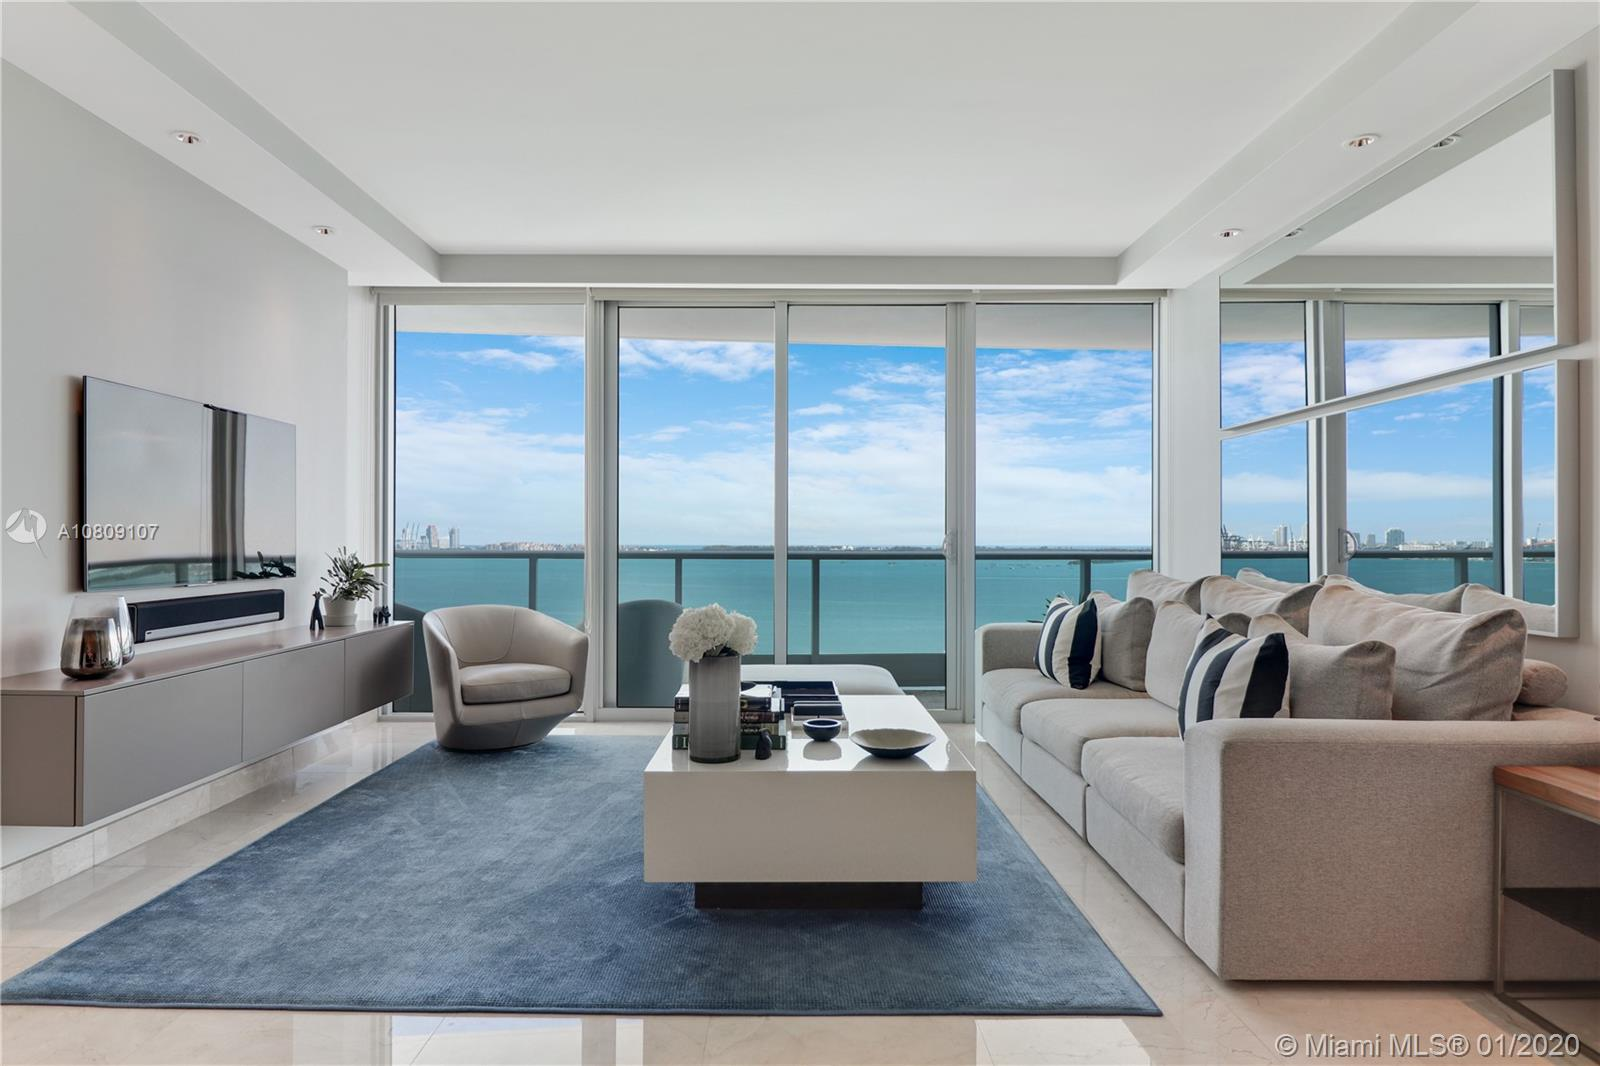 Enjoy stunning sunrises and endless vistas from this picture-perfect residence. Be welcomed to a private foyer via private elevator that opens to an ample and unique space with unobstructed views of Biscayne Bay, Miami Beach, and beyond. Every aspect of this unit has been carefully thought out and meticulously configured to accommodate a family of 4+ or as second/vacation home. All rooms were recently updated with smart and elegant touches to enhance their comfort and maximize their use. The bathrooms were tastefully refreshed to the specs of a five-stars hotel. New interior doors were installed to amplify the volume of flow of the unit. A designer lighting package was also added to improve the ambiance, and a built-in Murphy bed in the den allows for overnight guests.